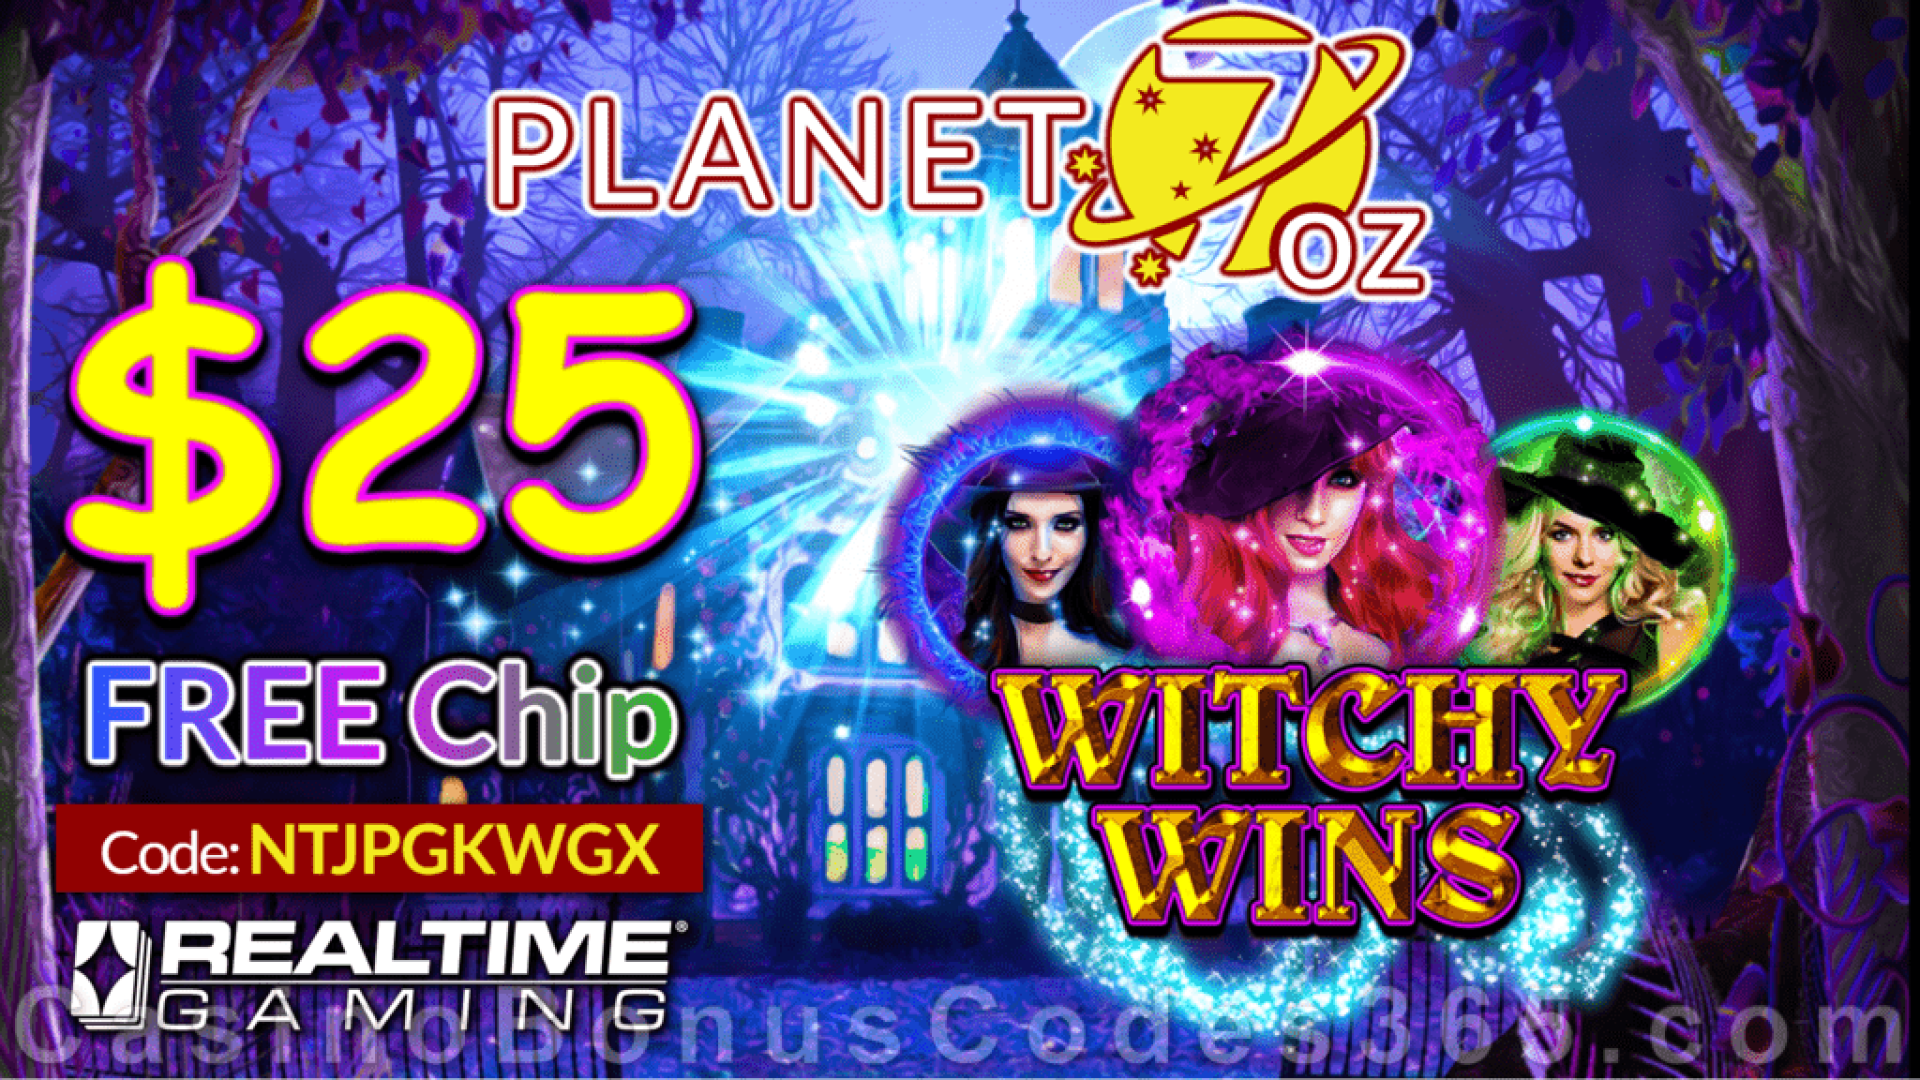 Planet 7 OZ Casino Witchy Wins New RTG Game $25 FREE Chip Special Offer